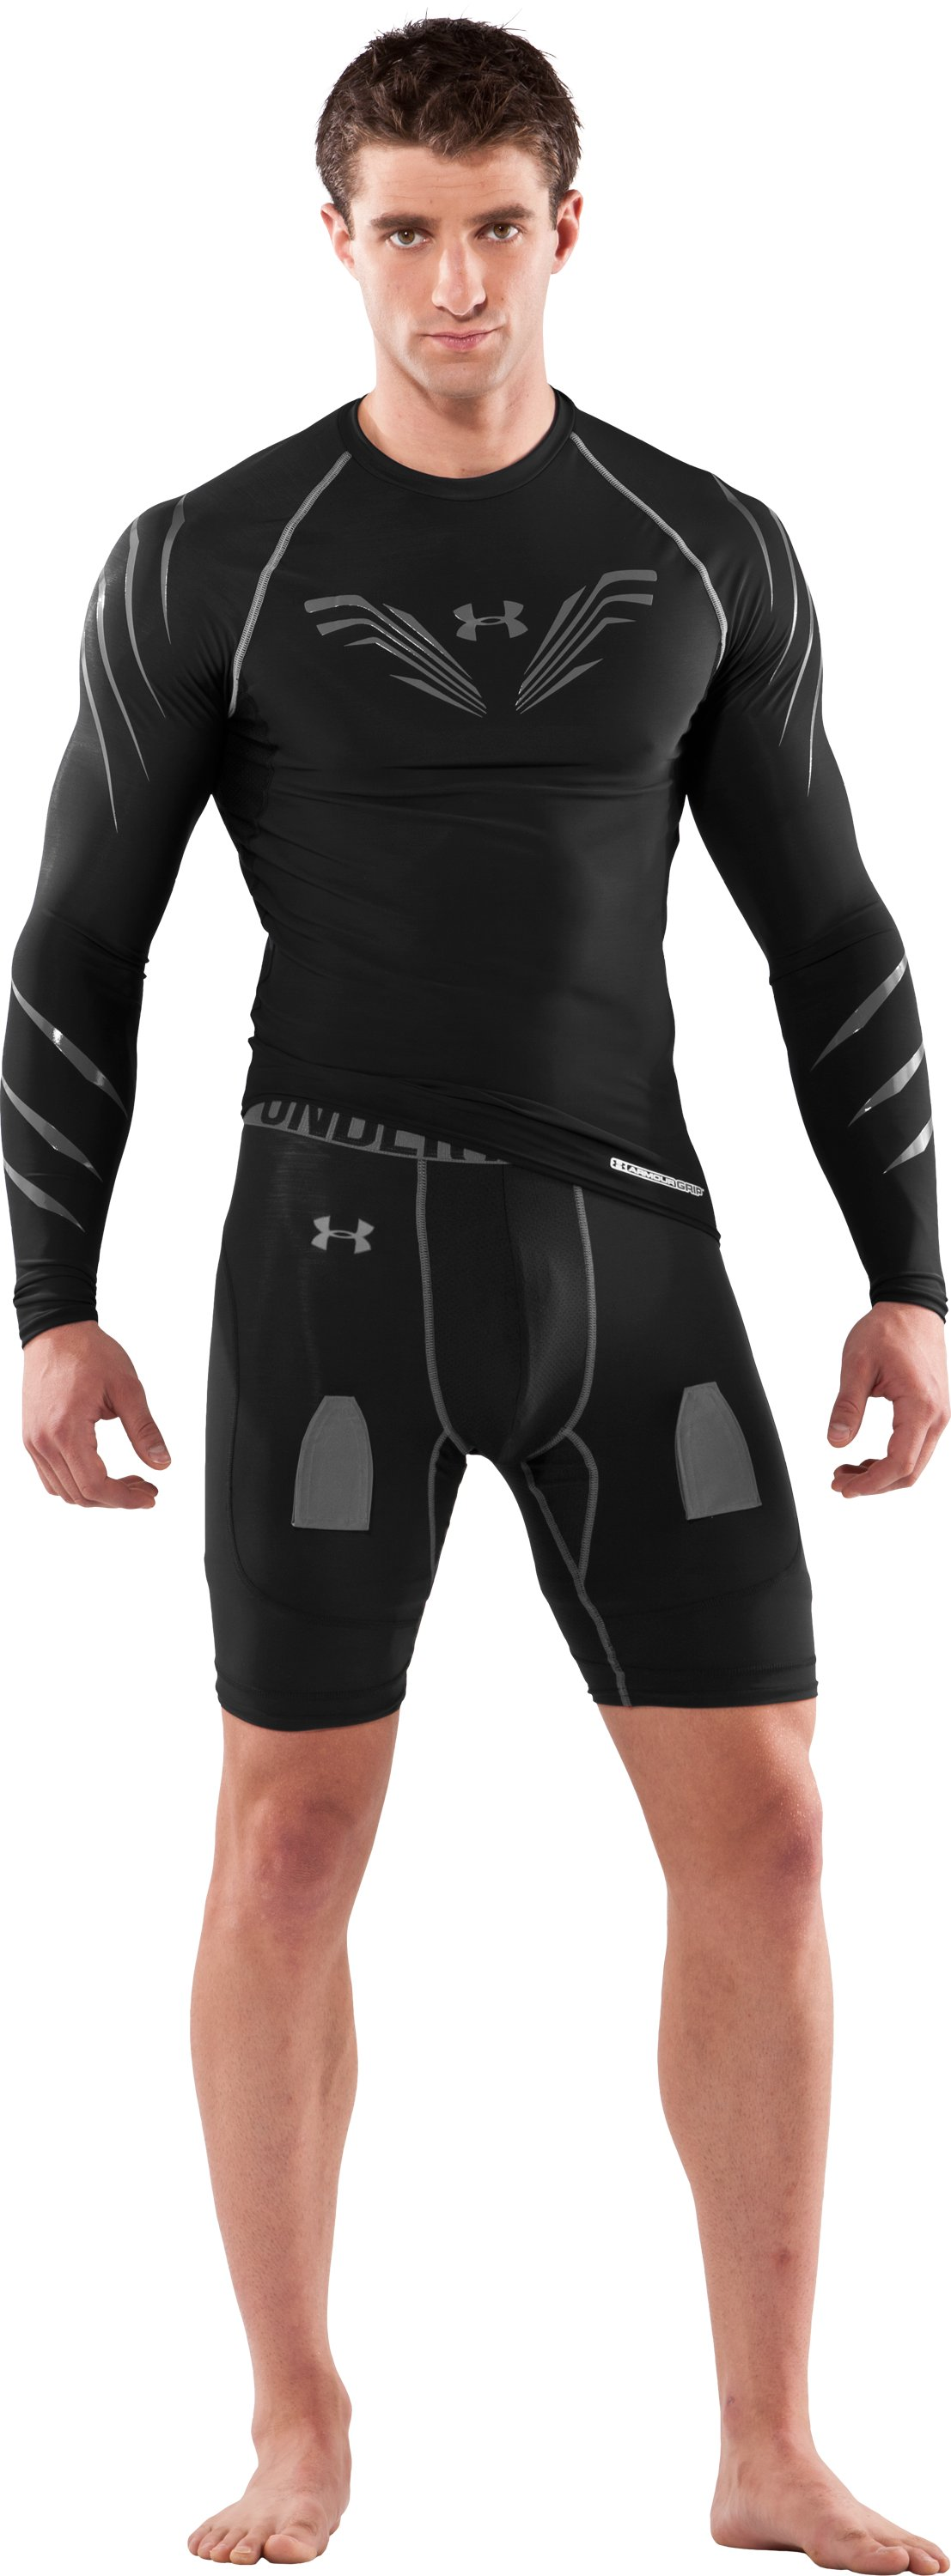 Men's Hockey Compression Shorts W/Cup, Black